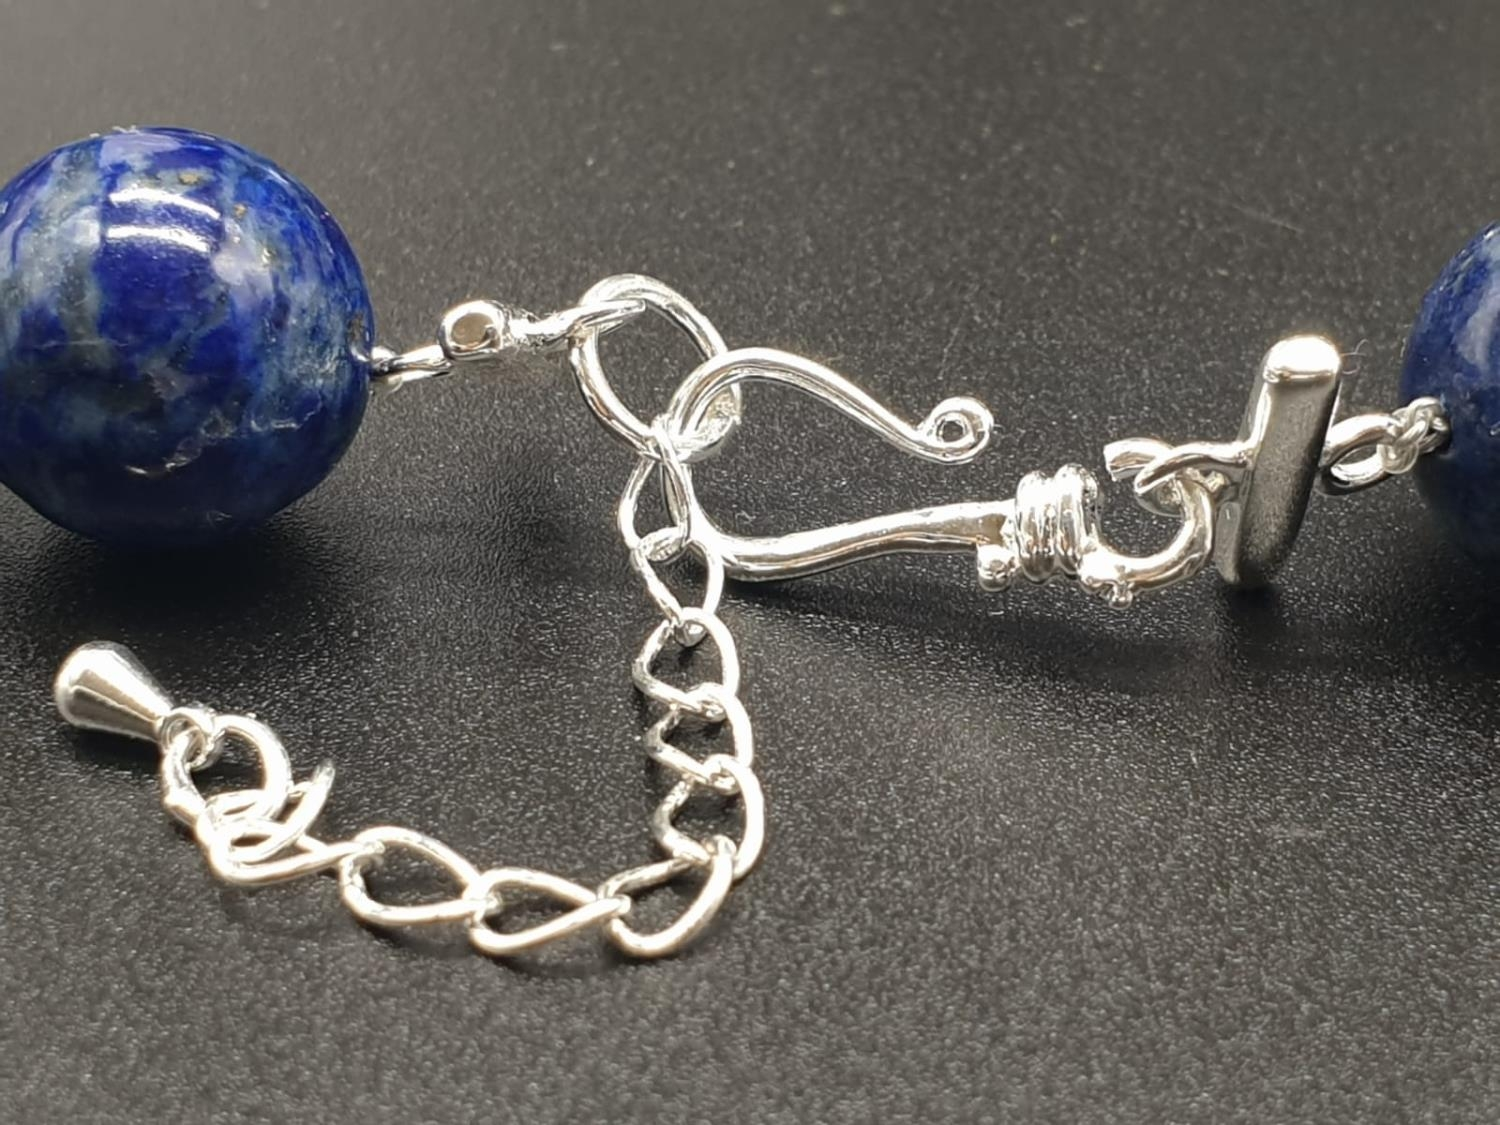 A Tibetan Buddhist lapis lazuli necklace and earrings set in a presentation box. Necklace length: - Image 7 of 11